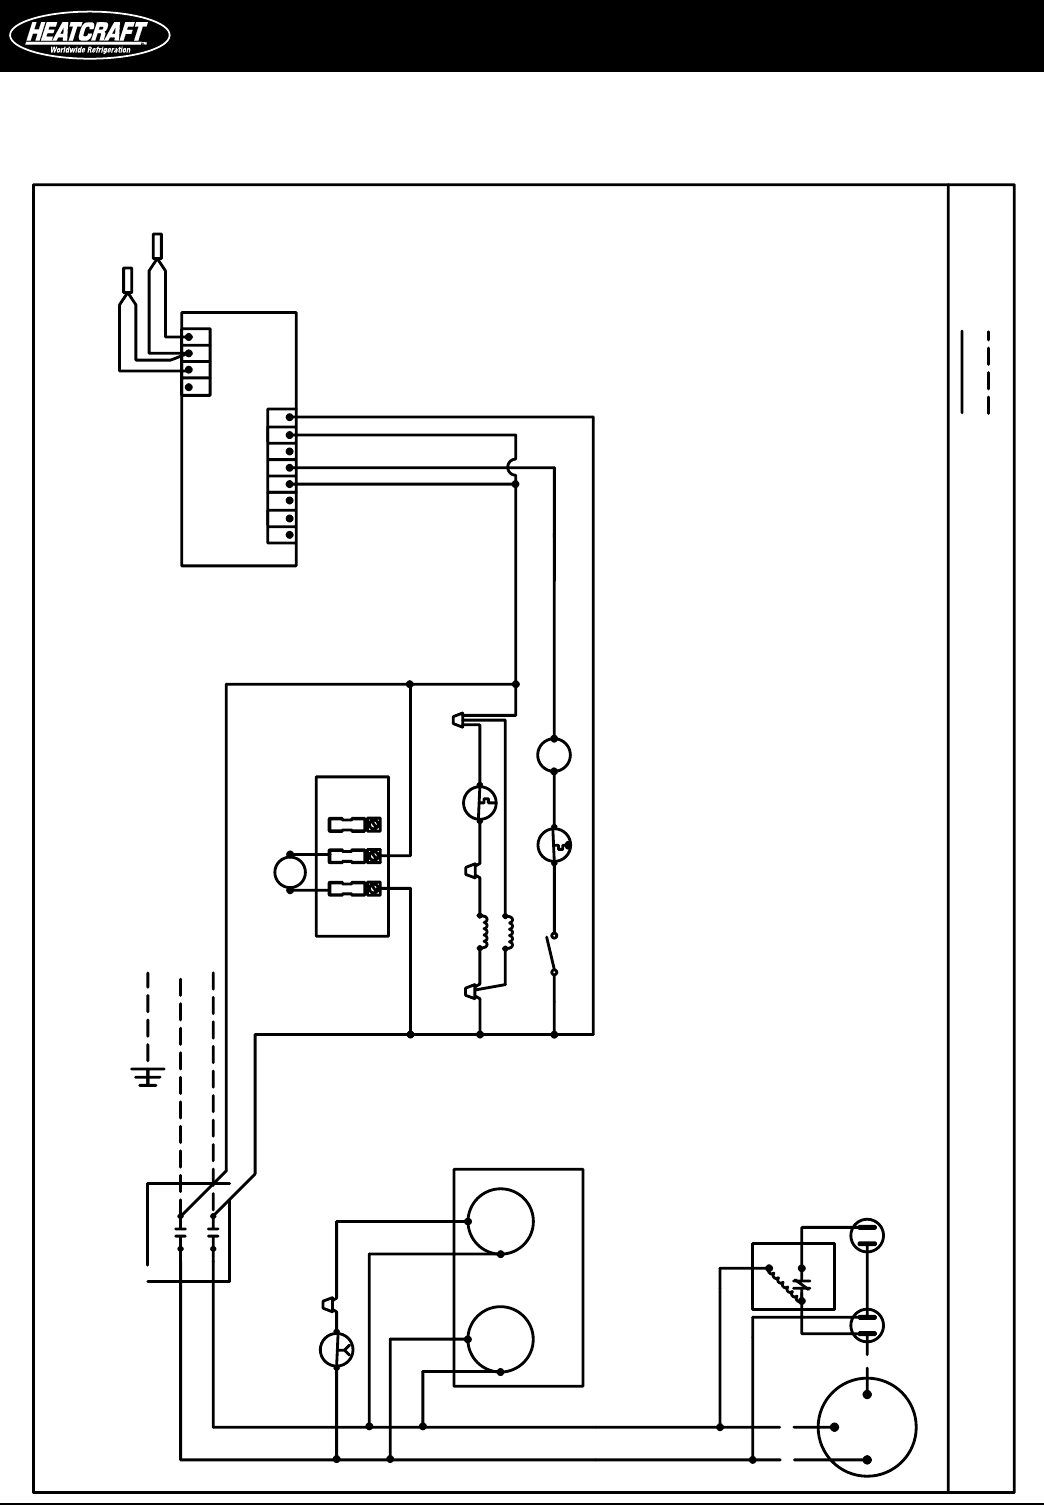 page 16 of heatcraft refrigeration products refrigerator pro3 user 16 installation and operations manual